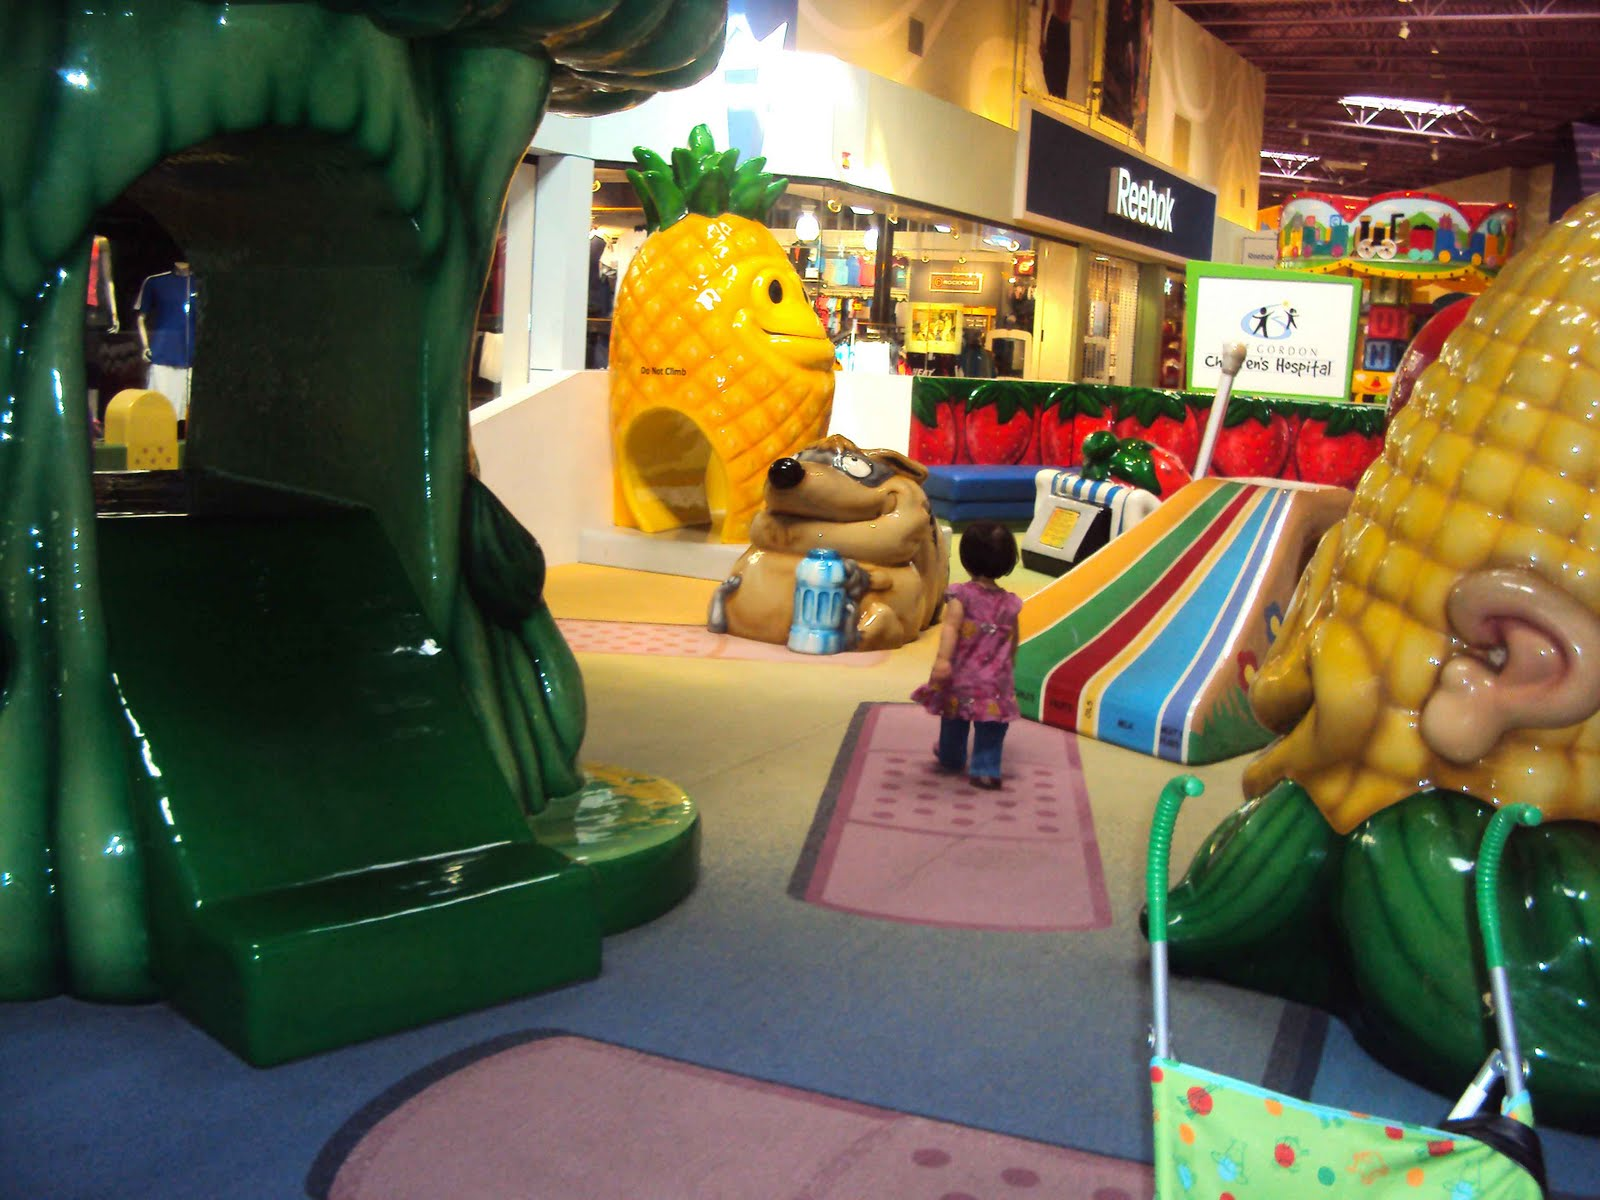 All things katy play place at concord mills mall Concord mills mall aquarium